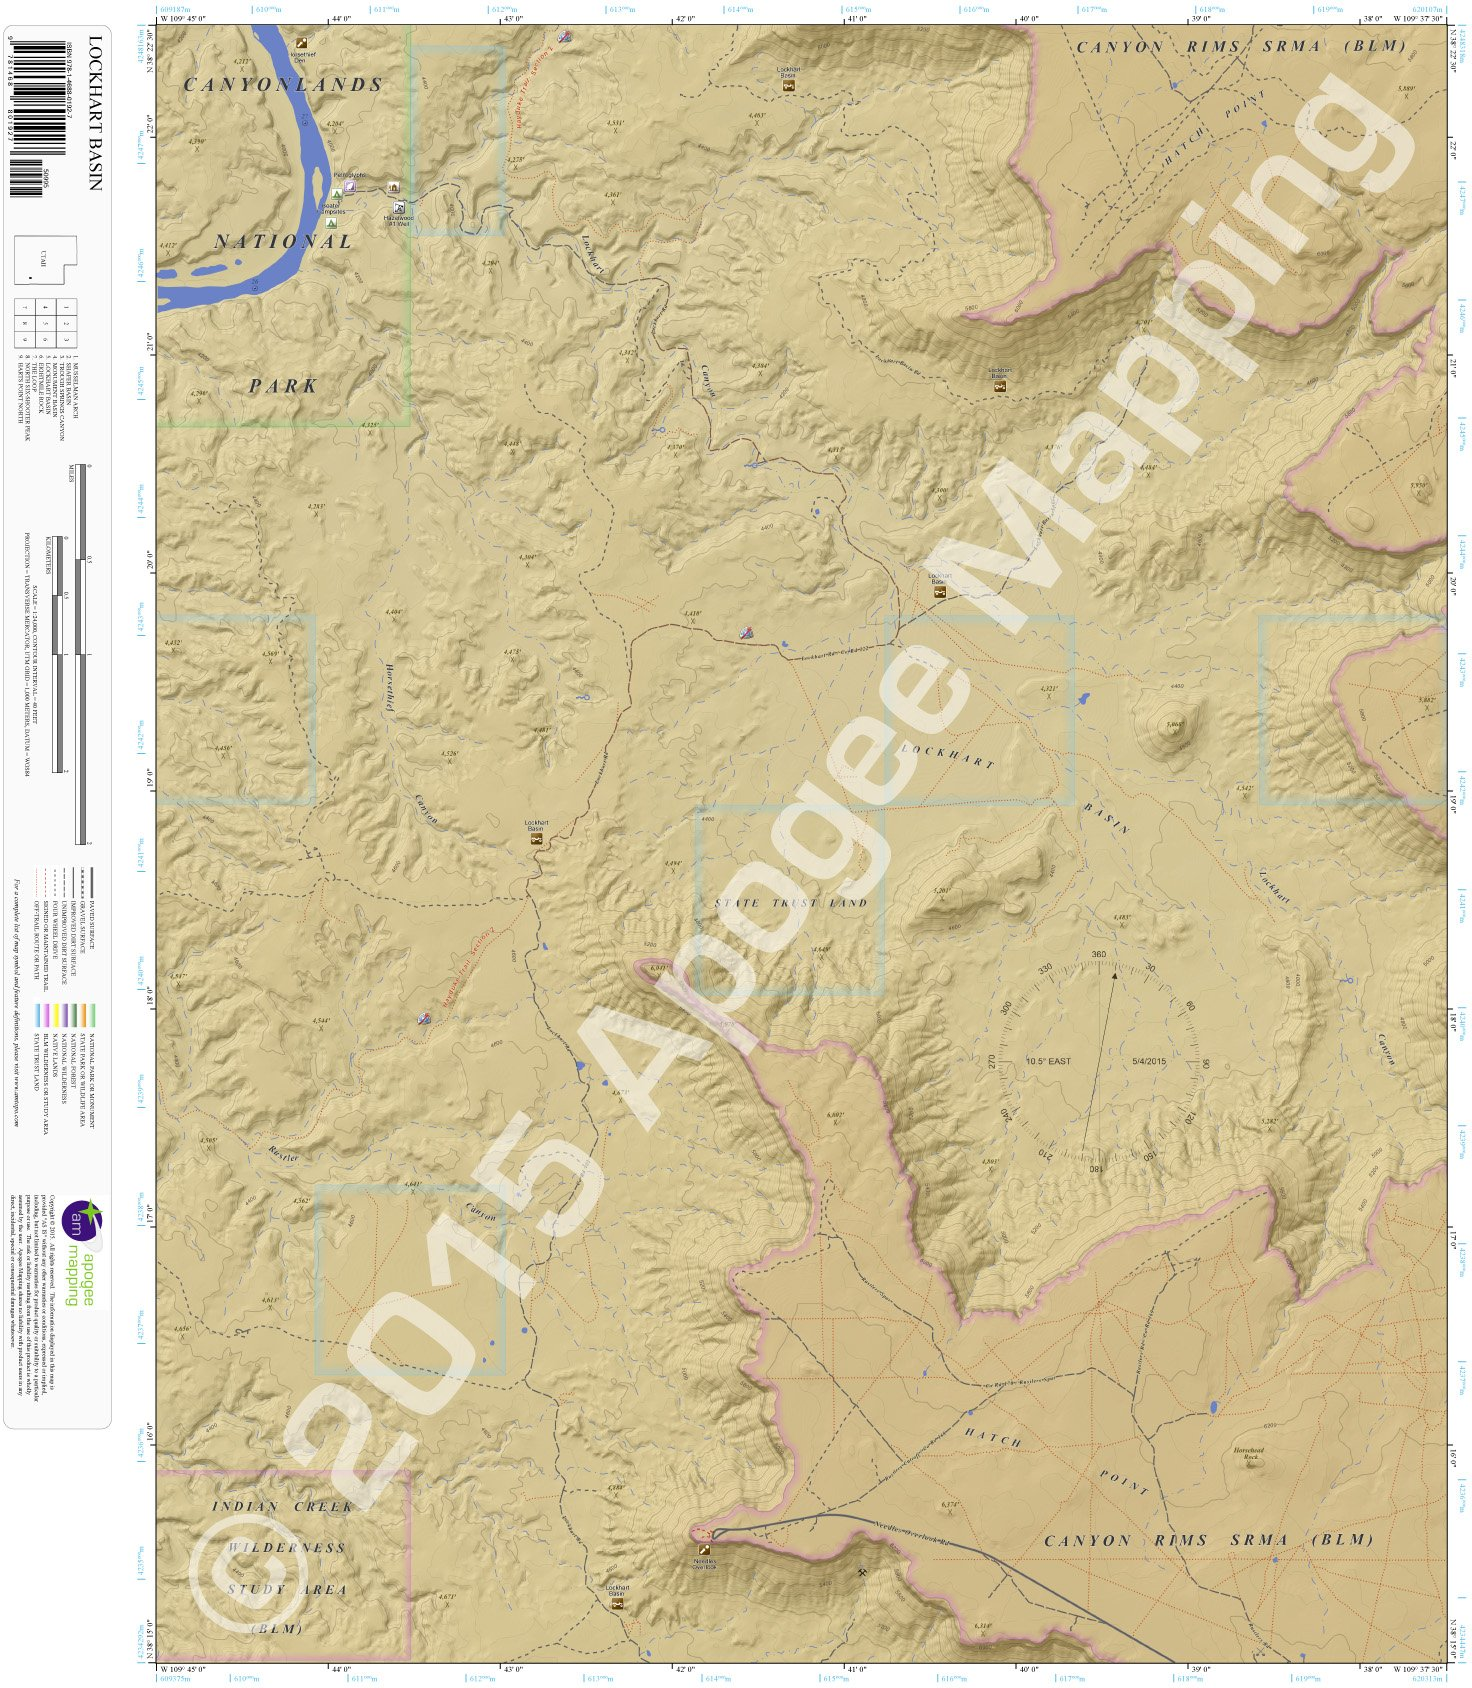 Lockhart Basin, Utah 7.5 Minute Topographic Map - Waterproof Paper pdf